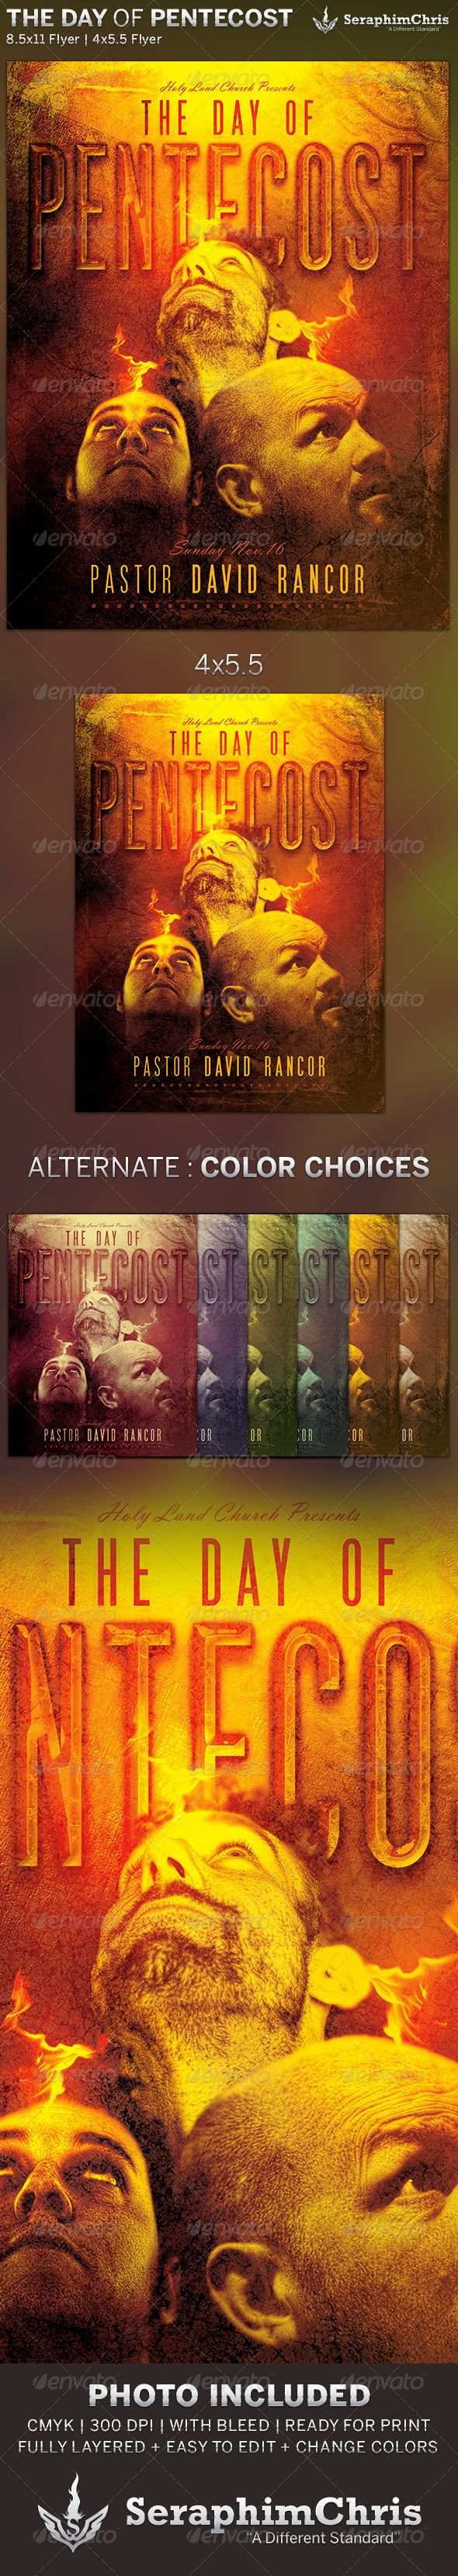 The Day of Pentecost: Church Flyer Template is designed for sermon series or church events revolving around the Book of Acts. This premium flyer design is constructed to give the highest dynamic quality when printed or posted to social media site and other formats. This file is exclusive to graphicriver.net